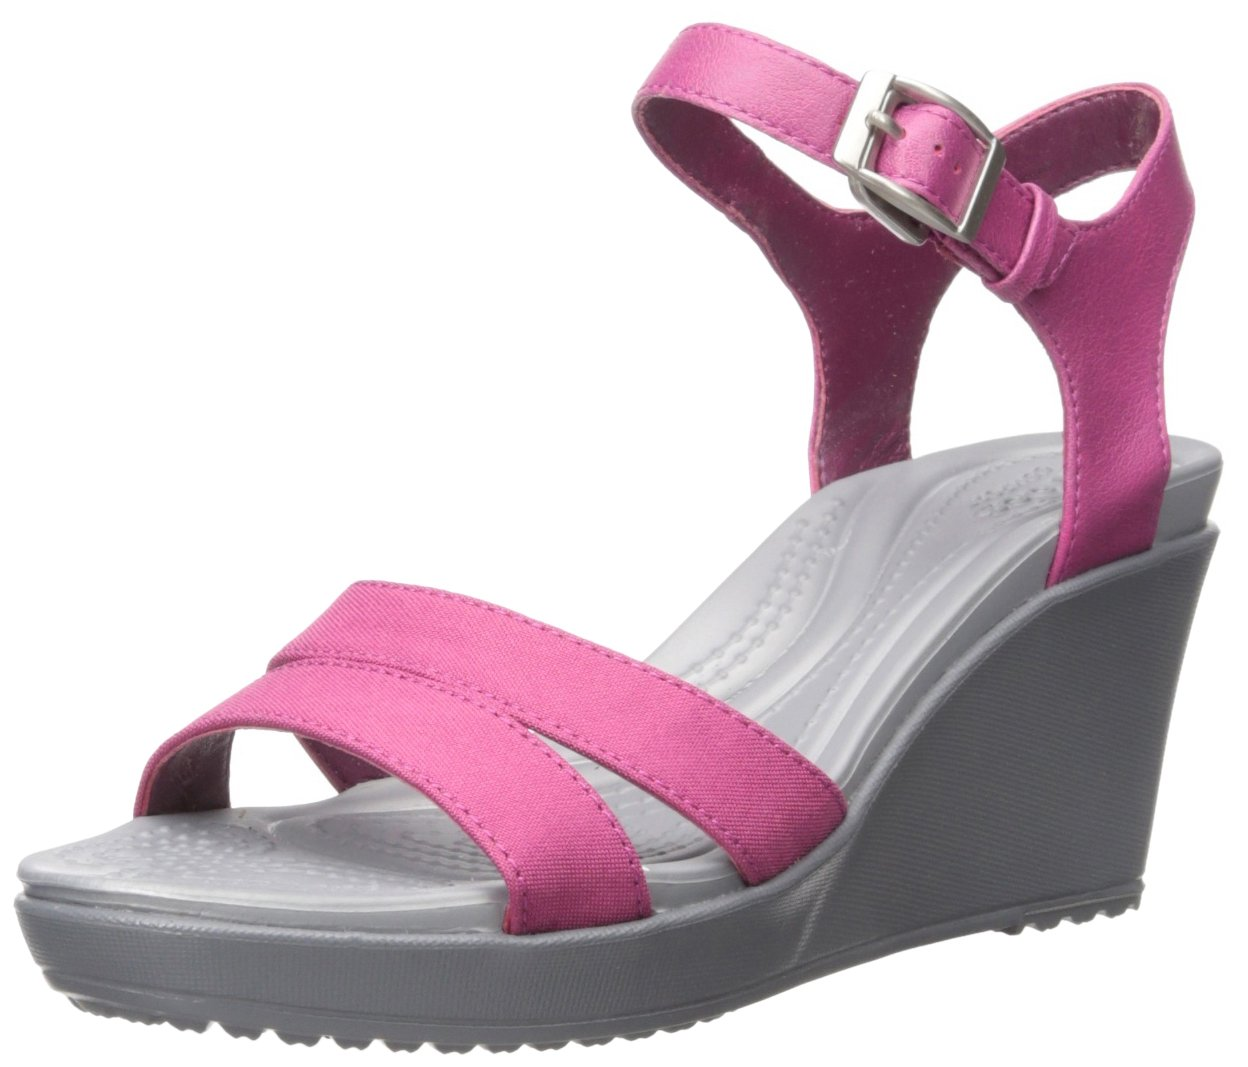 crocs Women's Leigh II Ankle Strap Wedge Sandal, Berry, 7 M US